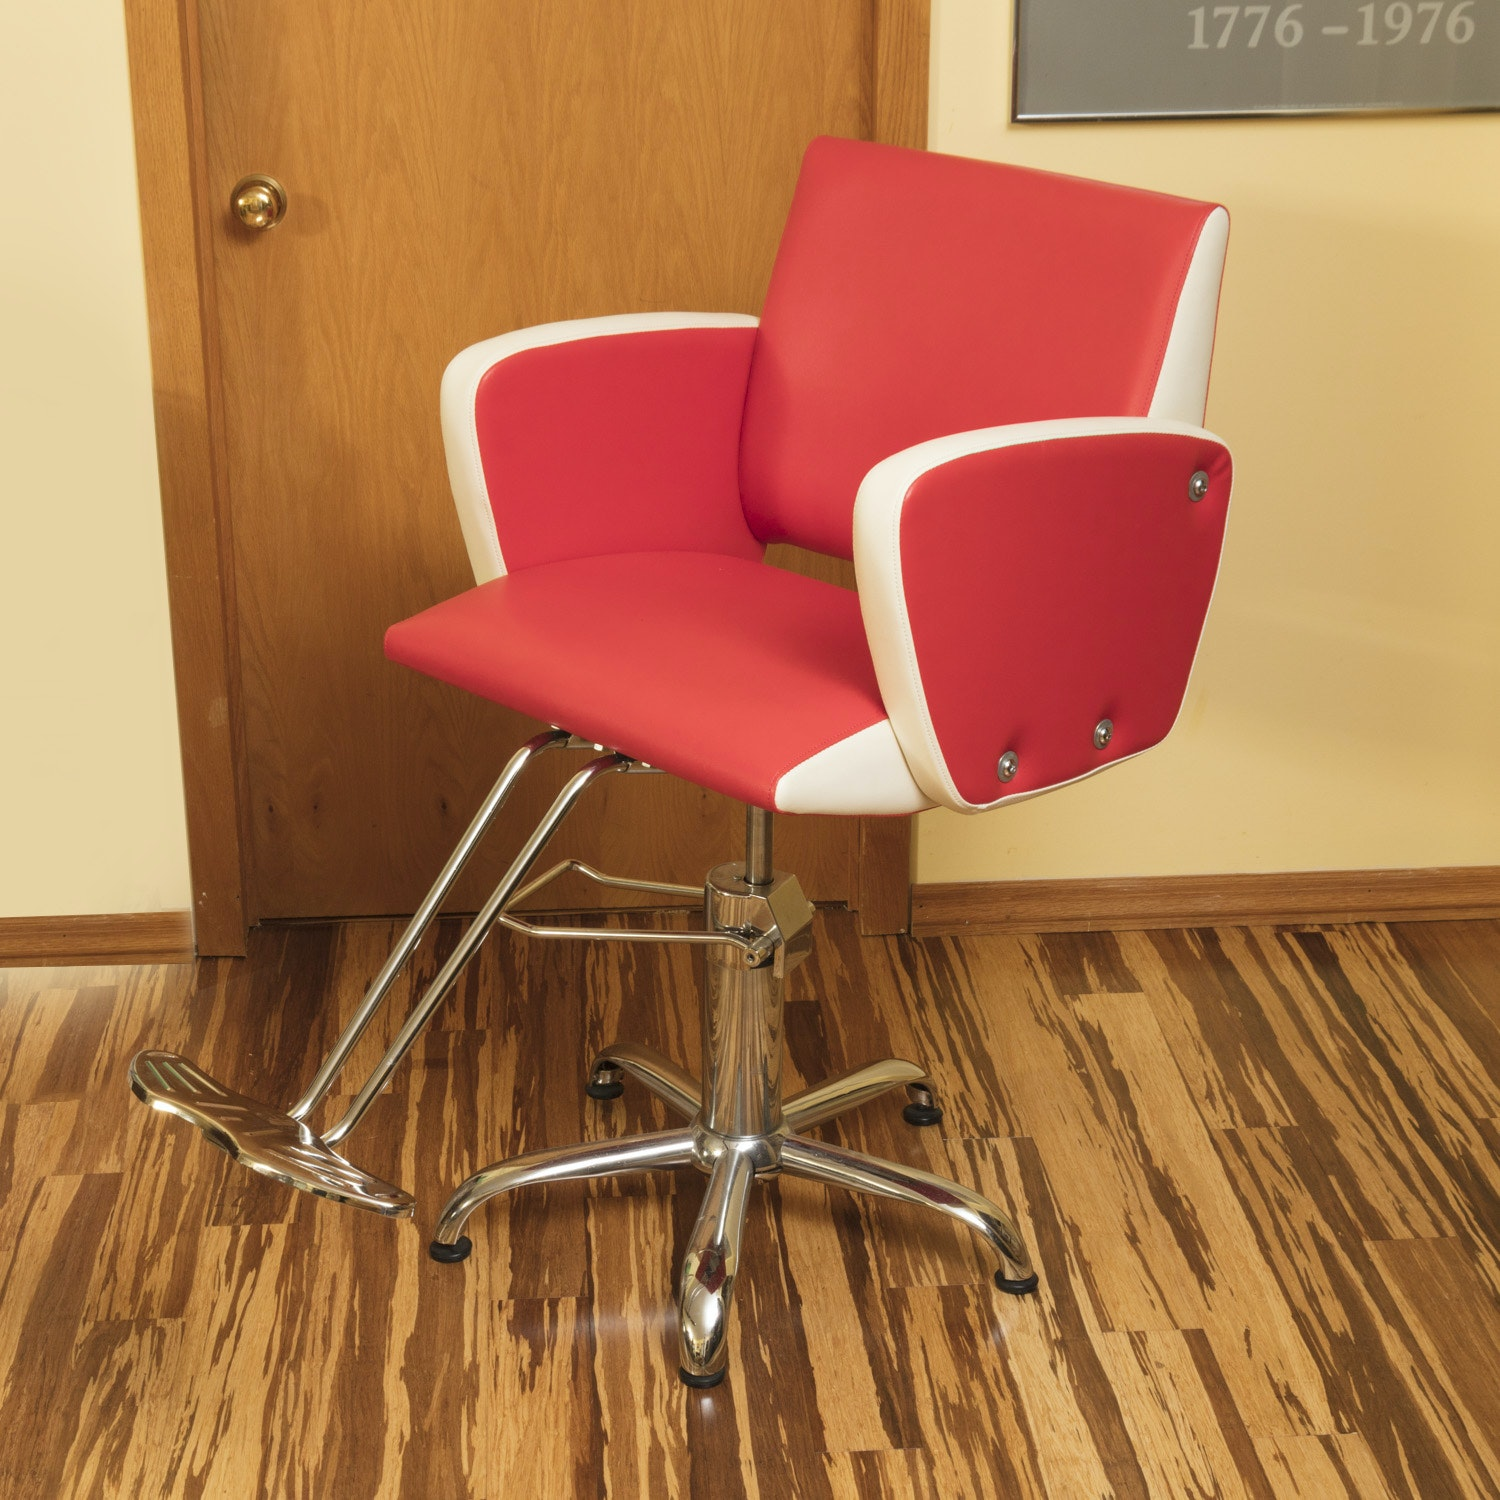 Shengyu Retro Style Hydraulic Hairdresser's or Barber's Chair